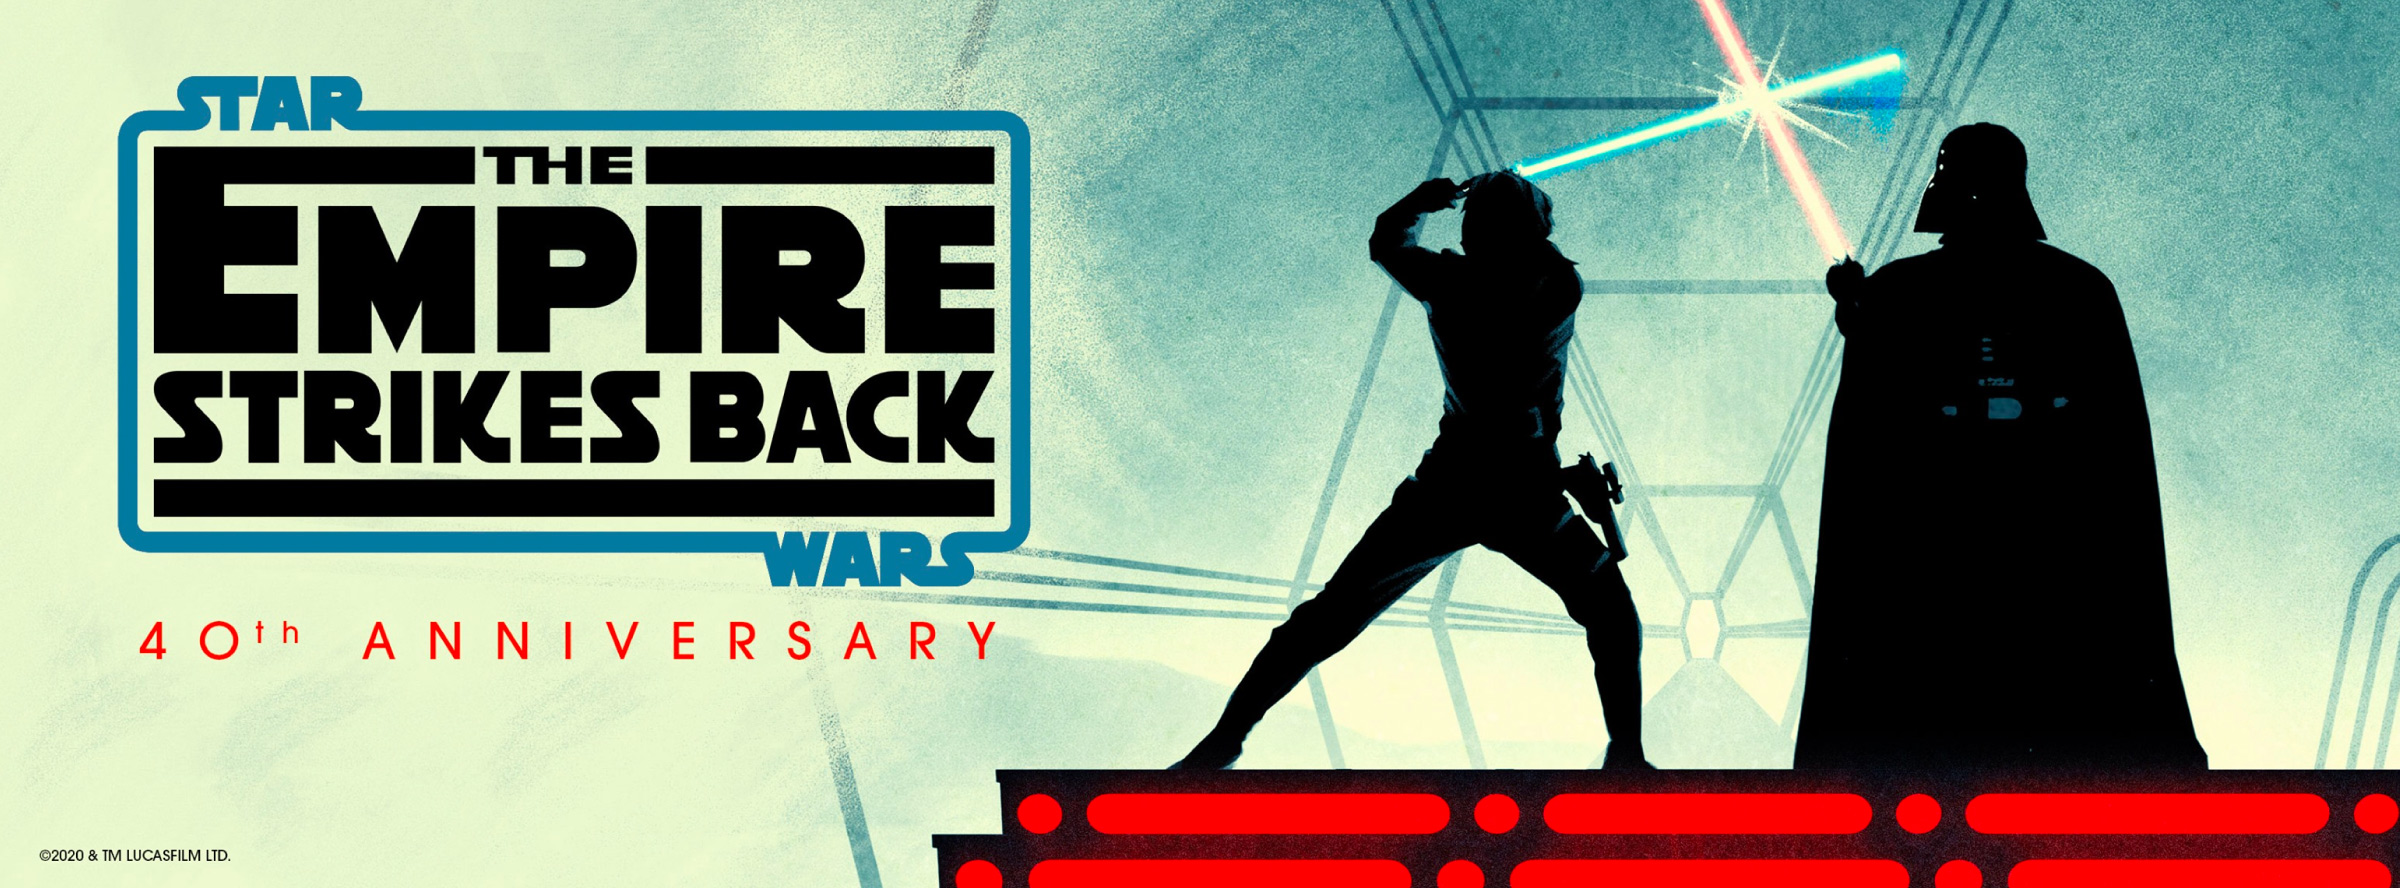 Slider Image for Star Wars: Episode V - The Empire Strikes Back 40th Anniversary